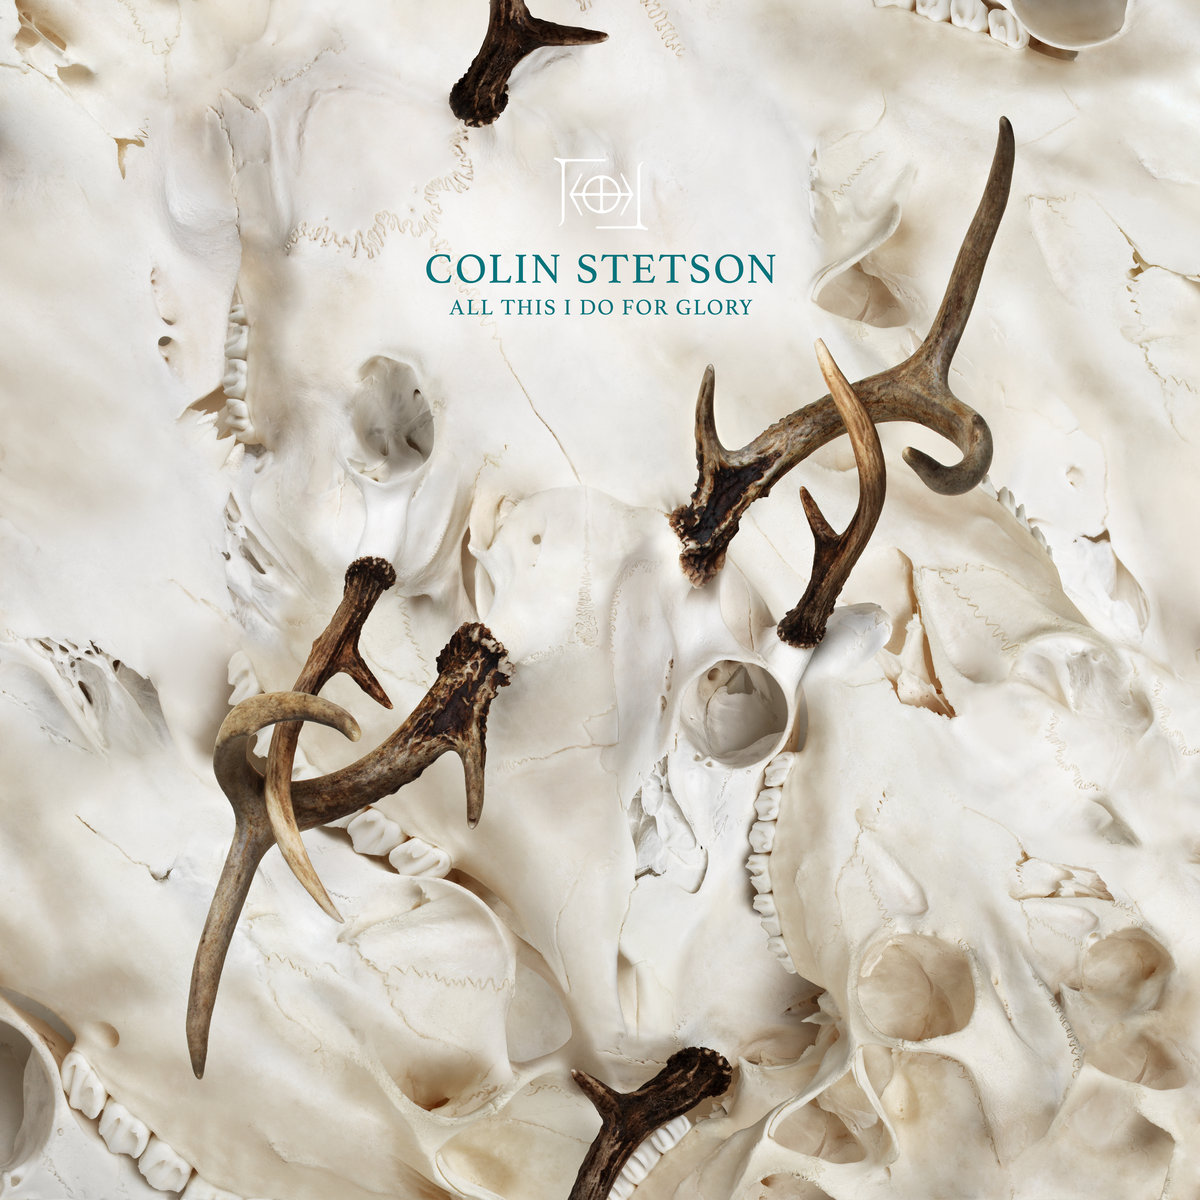 Colin Stetson ‒ «All This I Do For Glory